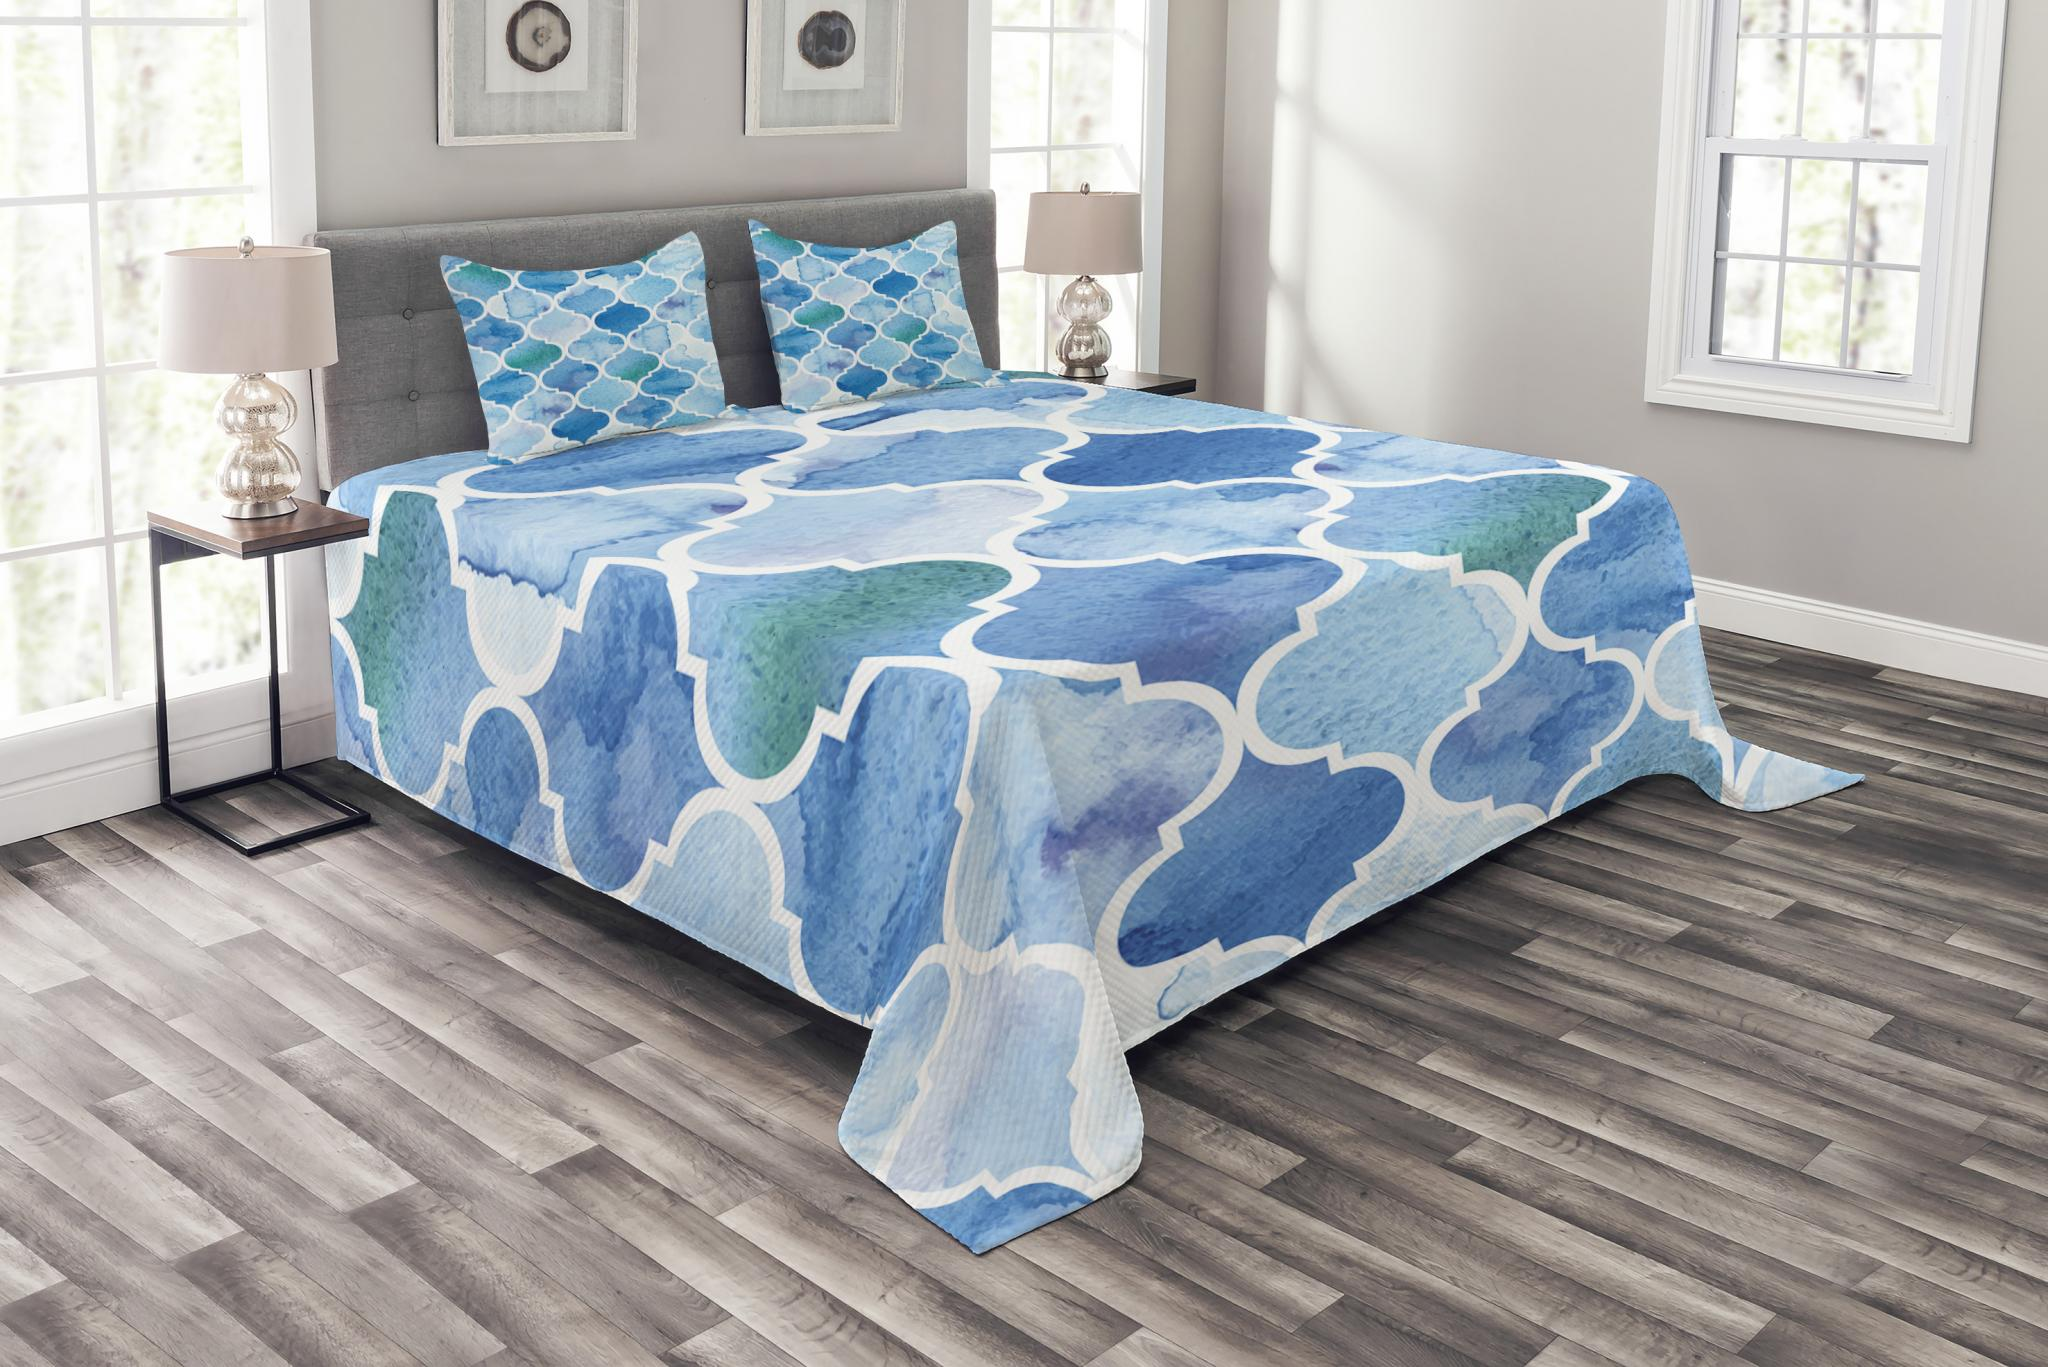 Coverlet Set with Shams Quilted Bed Cover Decorative Bedspread by Ambesonne